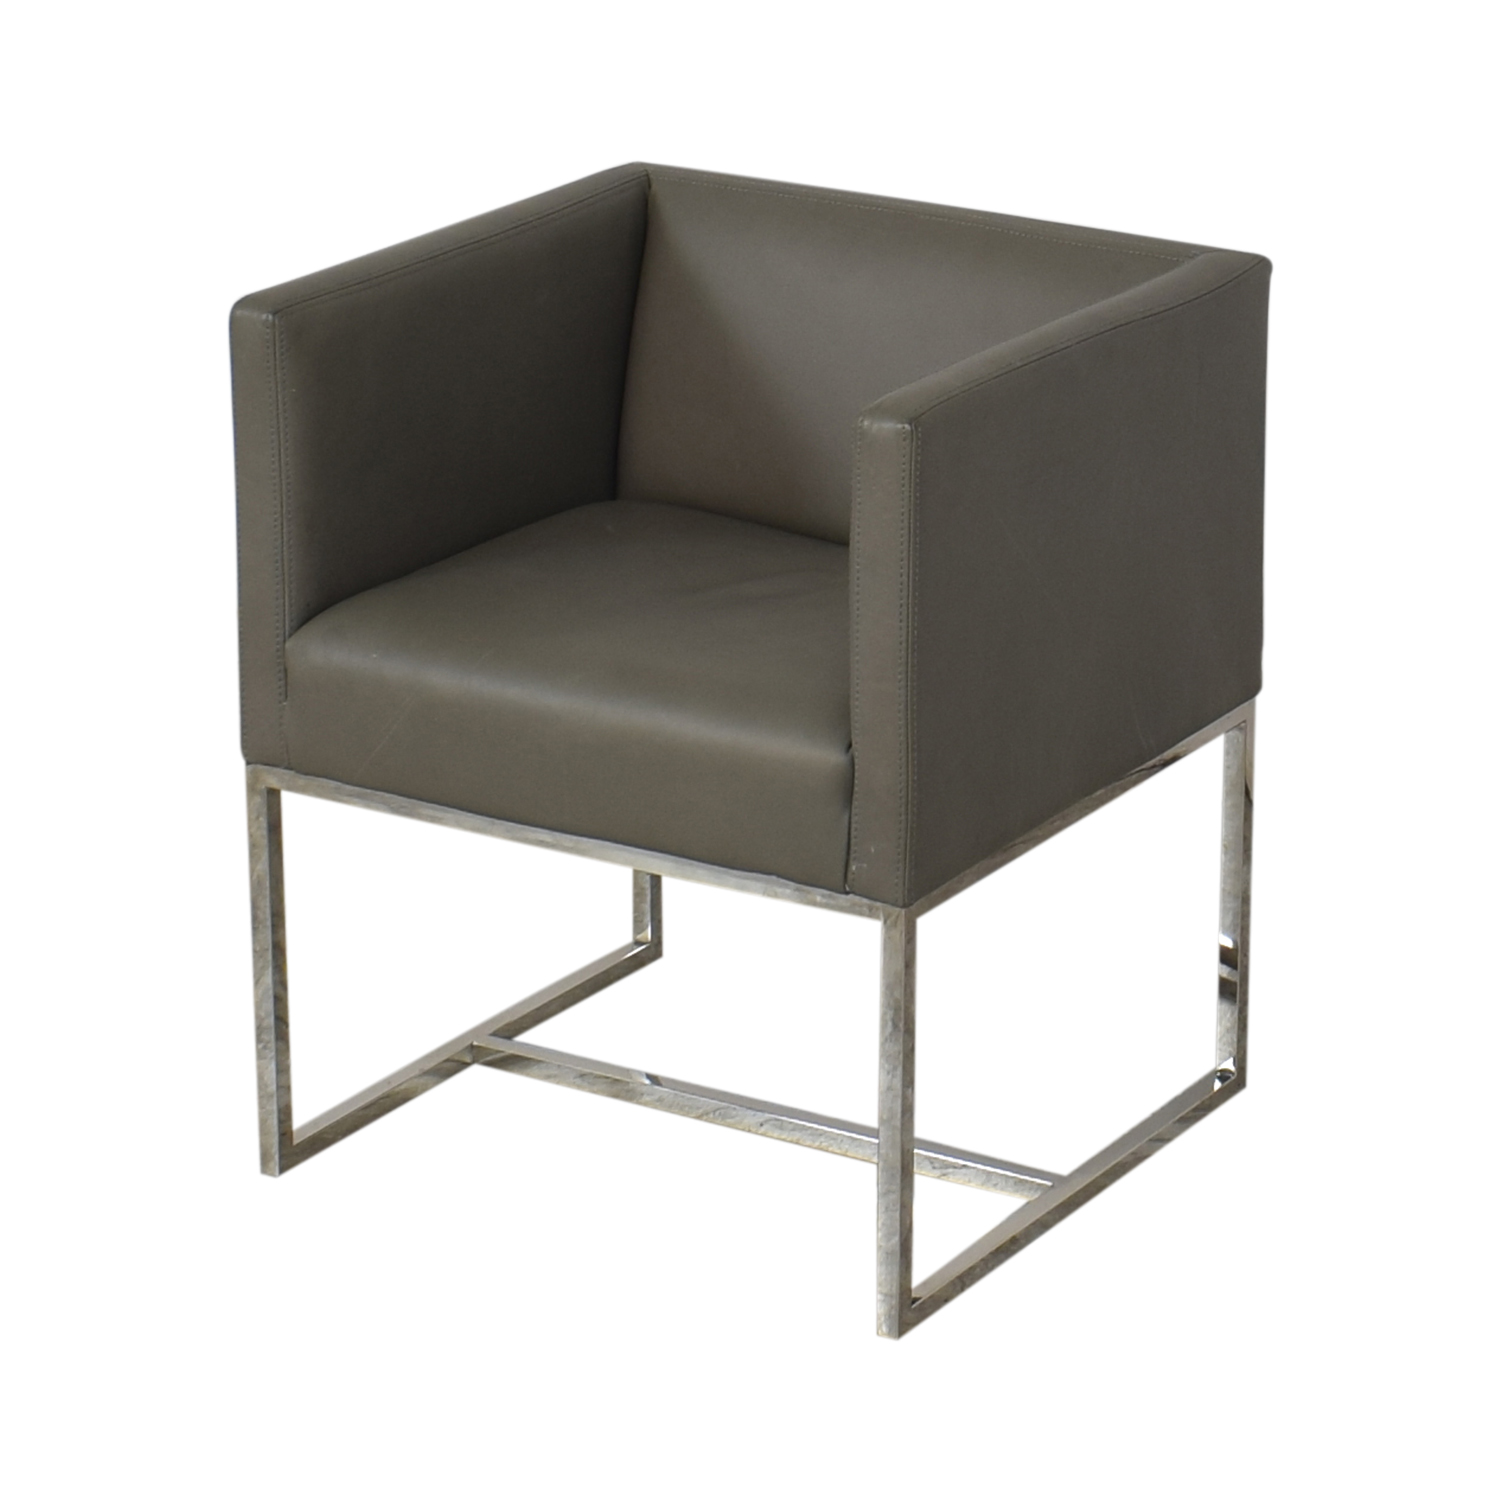 Restoration Hardware Restoration Hardware Emery Shelter Arm Chairs coupon